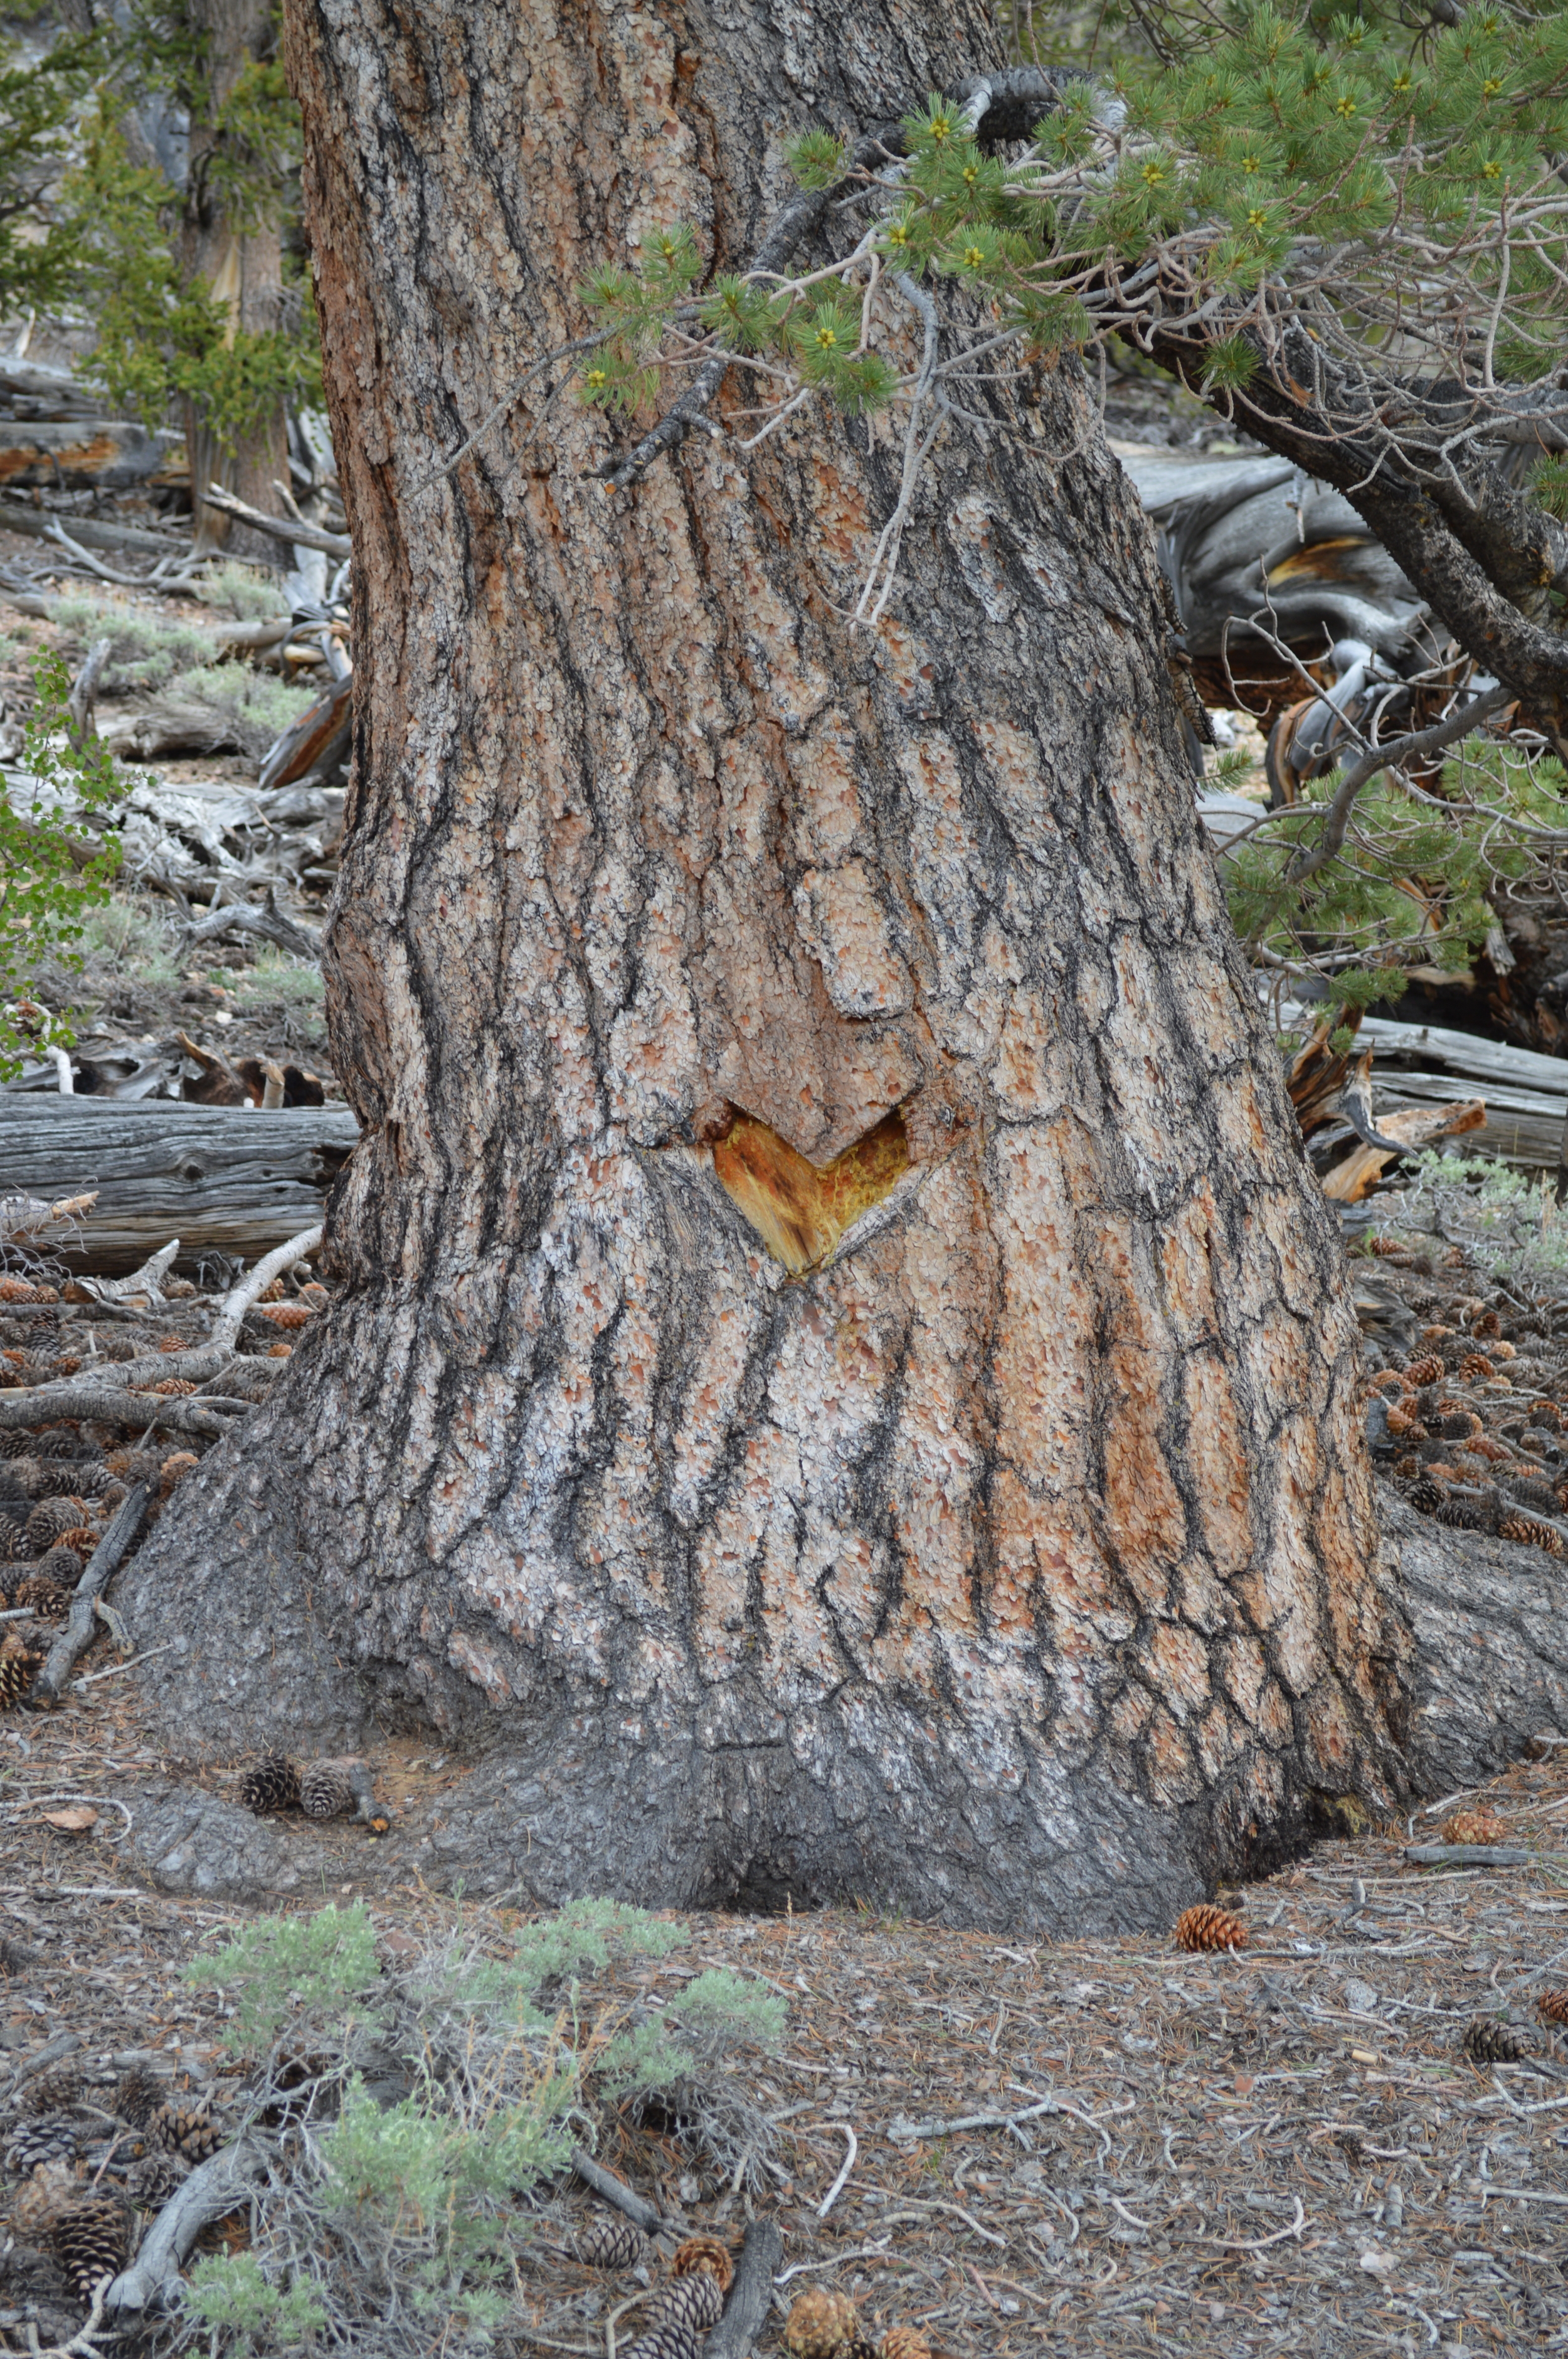 Tree vandals in the 21st century, a heart symbol knifed into the bark of a bristlecone in California's White Mountains.